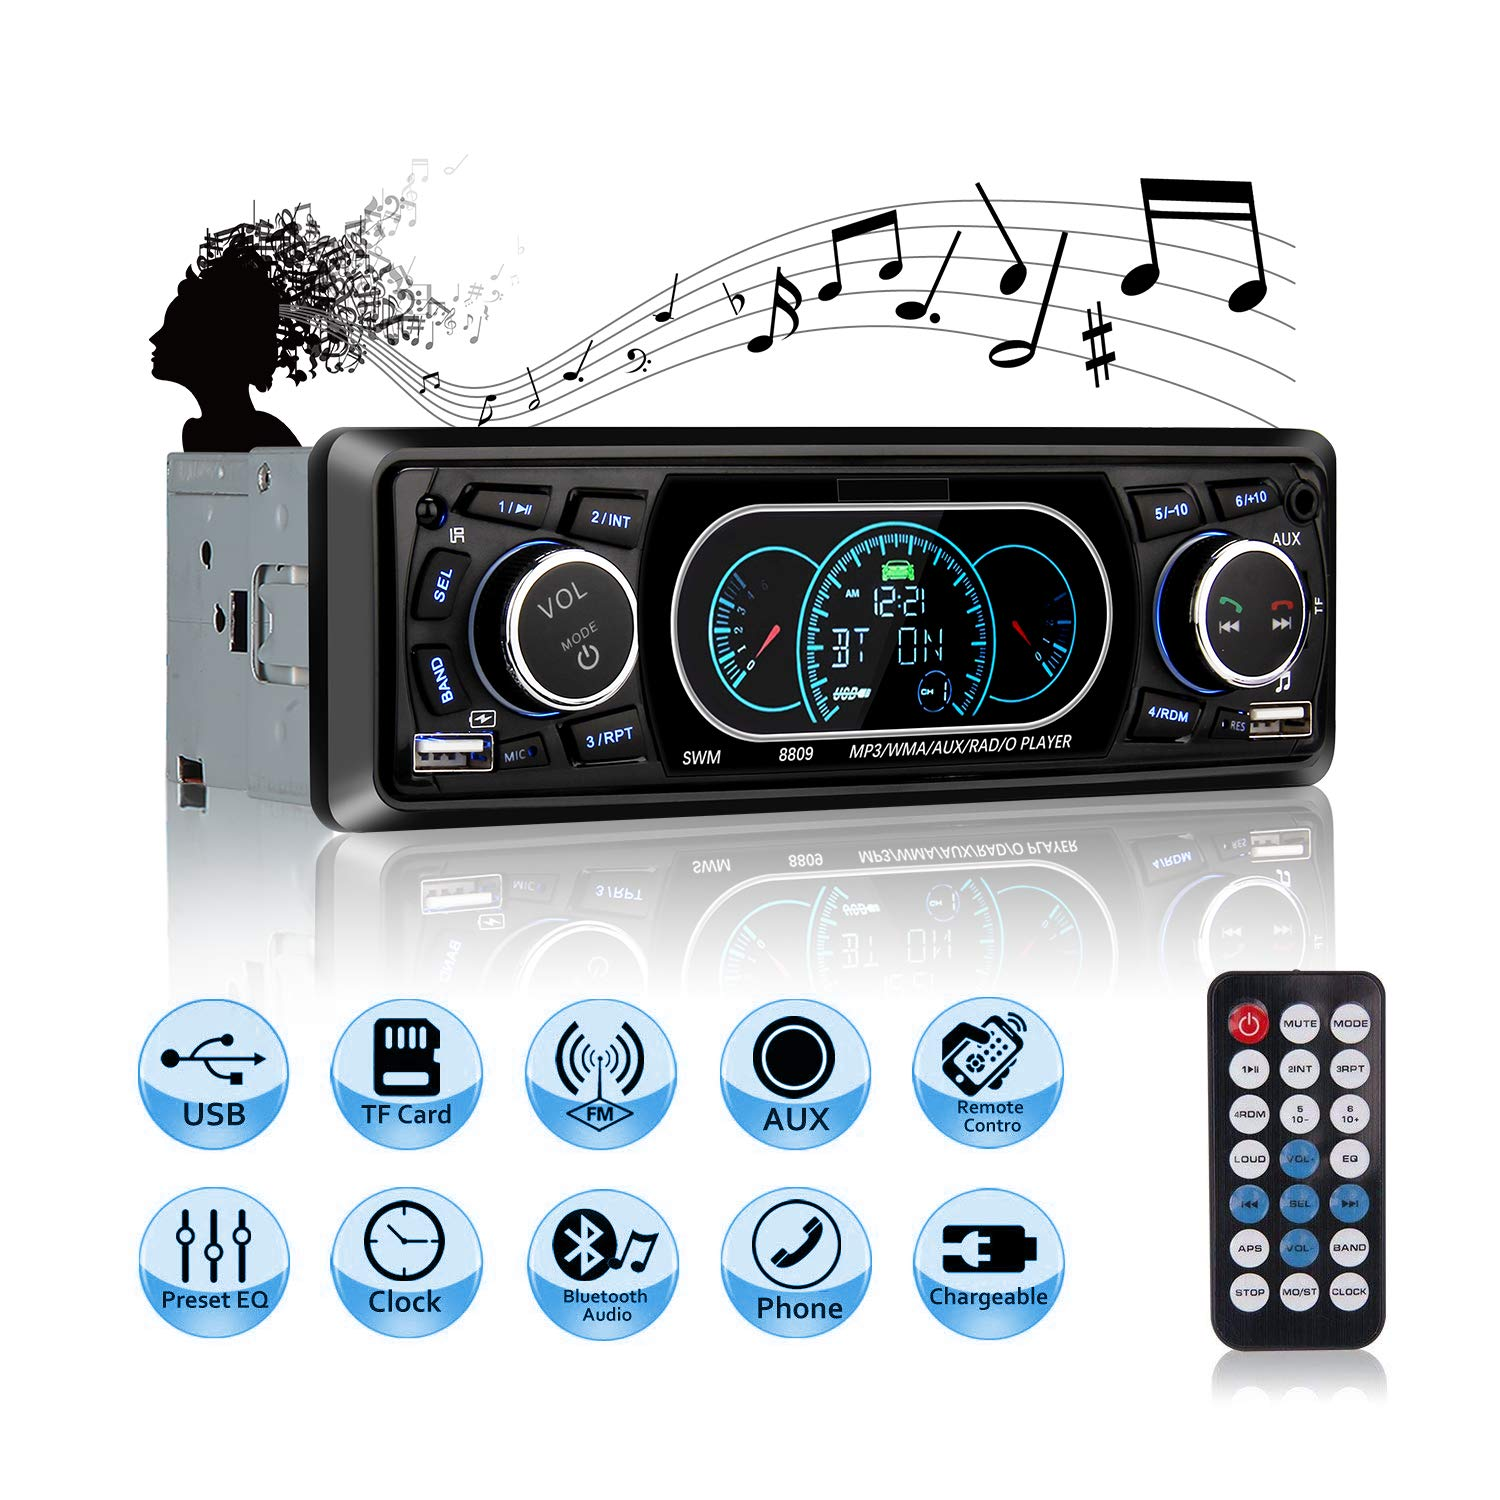 Mekuula Car Stereo Receiver Single DIN with Bluetooth MP3 Player Audio Receiver 4 x 60W with Remote Control Support Hands-Free Call USB SD FM AUX DC12V for Installing at Center Console Car SUV